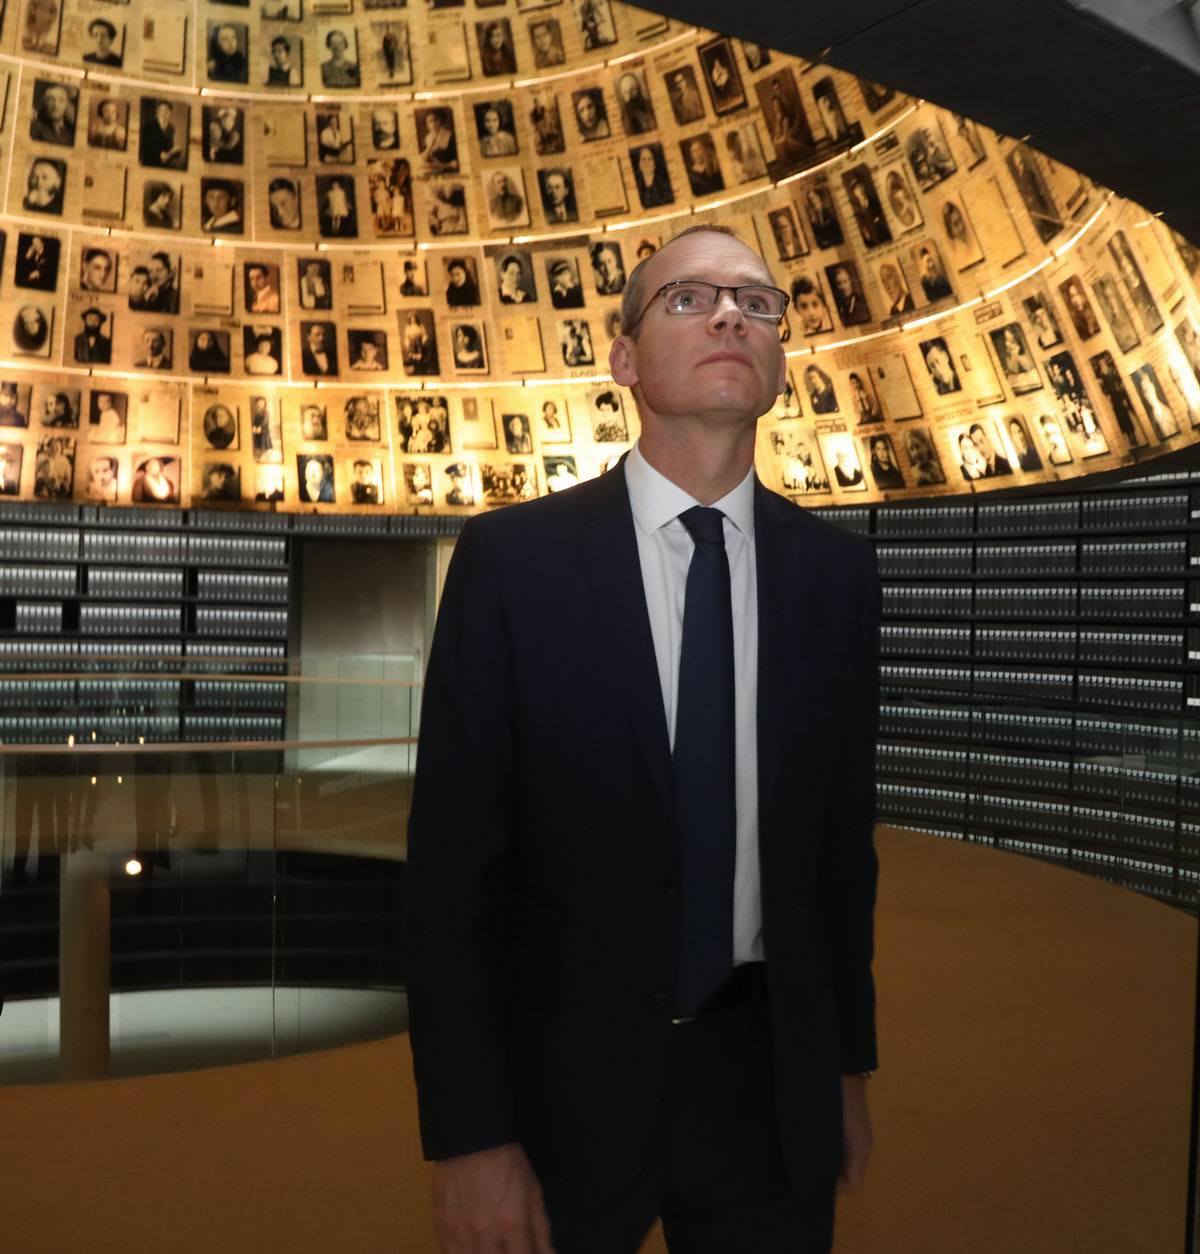 The Irish Foreign Minister toured the Hall of Names – a symbolic tombstone to the six million Jewish men, women and children murdered during the Shoah